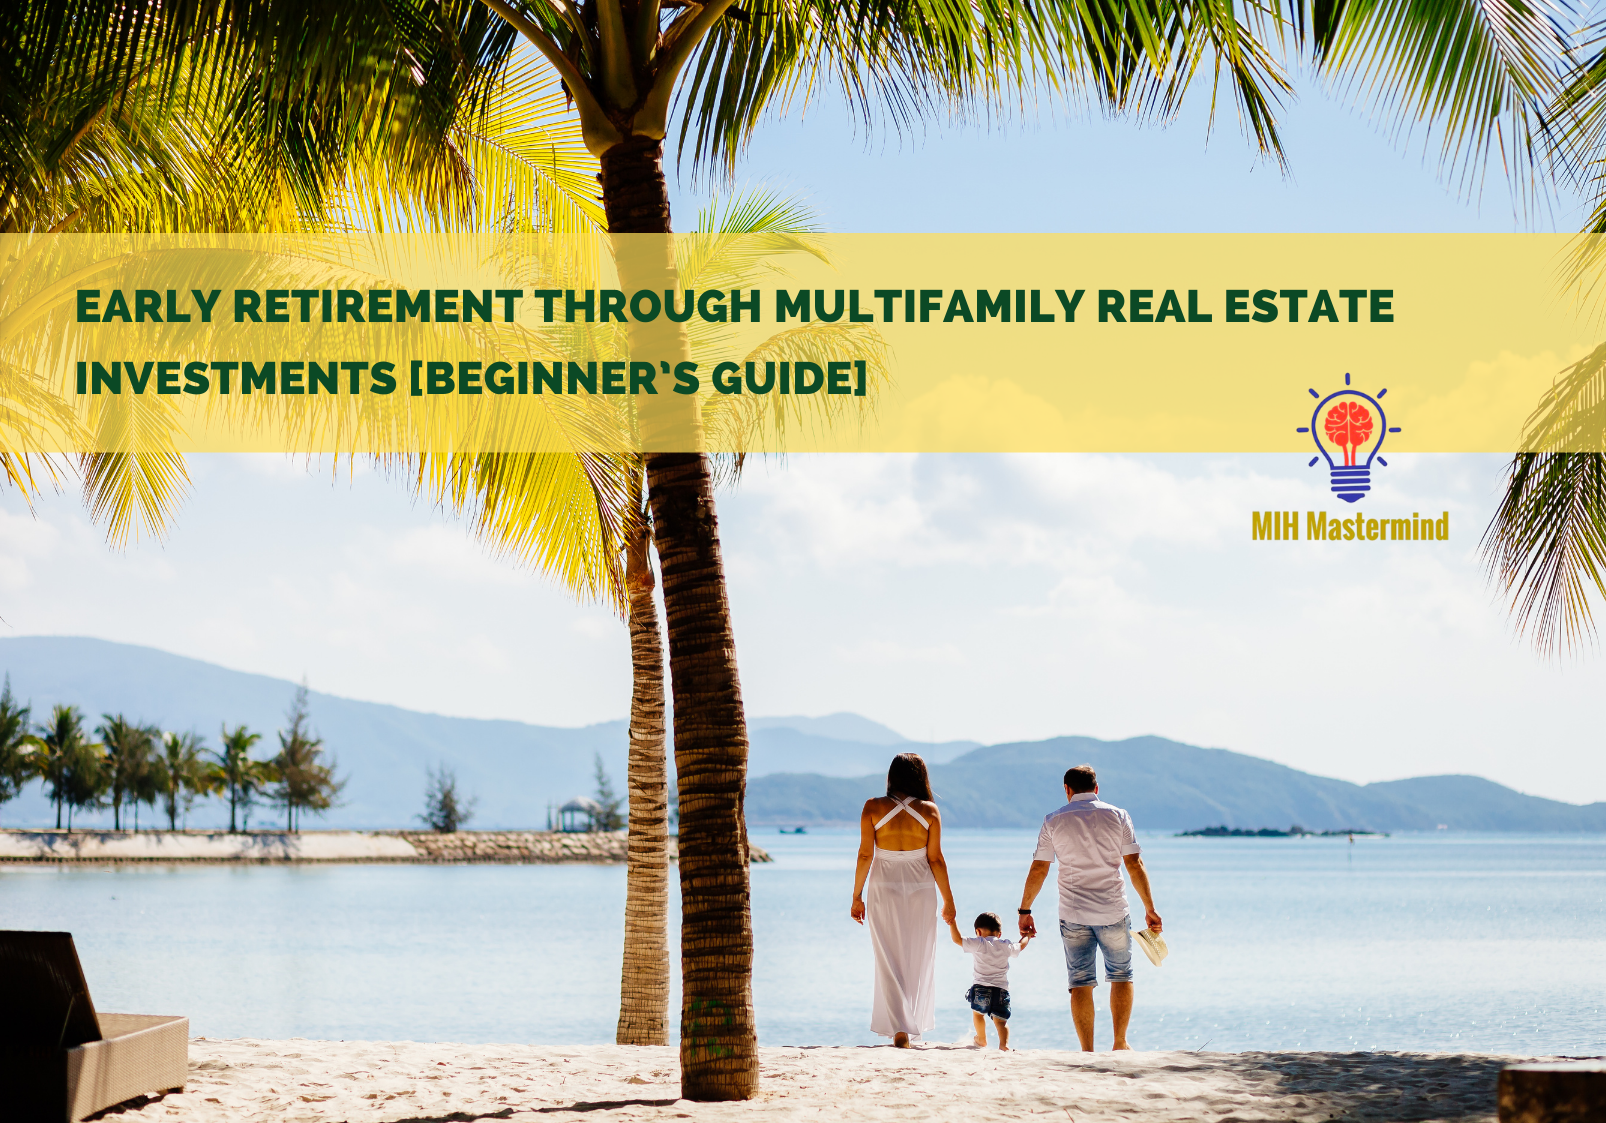 Early Retirement Through Multifamily Real Estate Investments [Beginner's Guide]